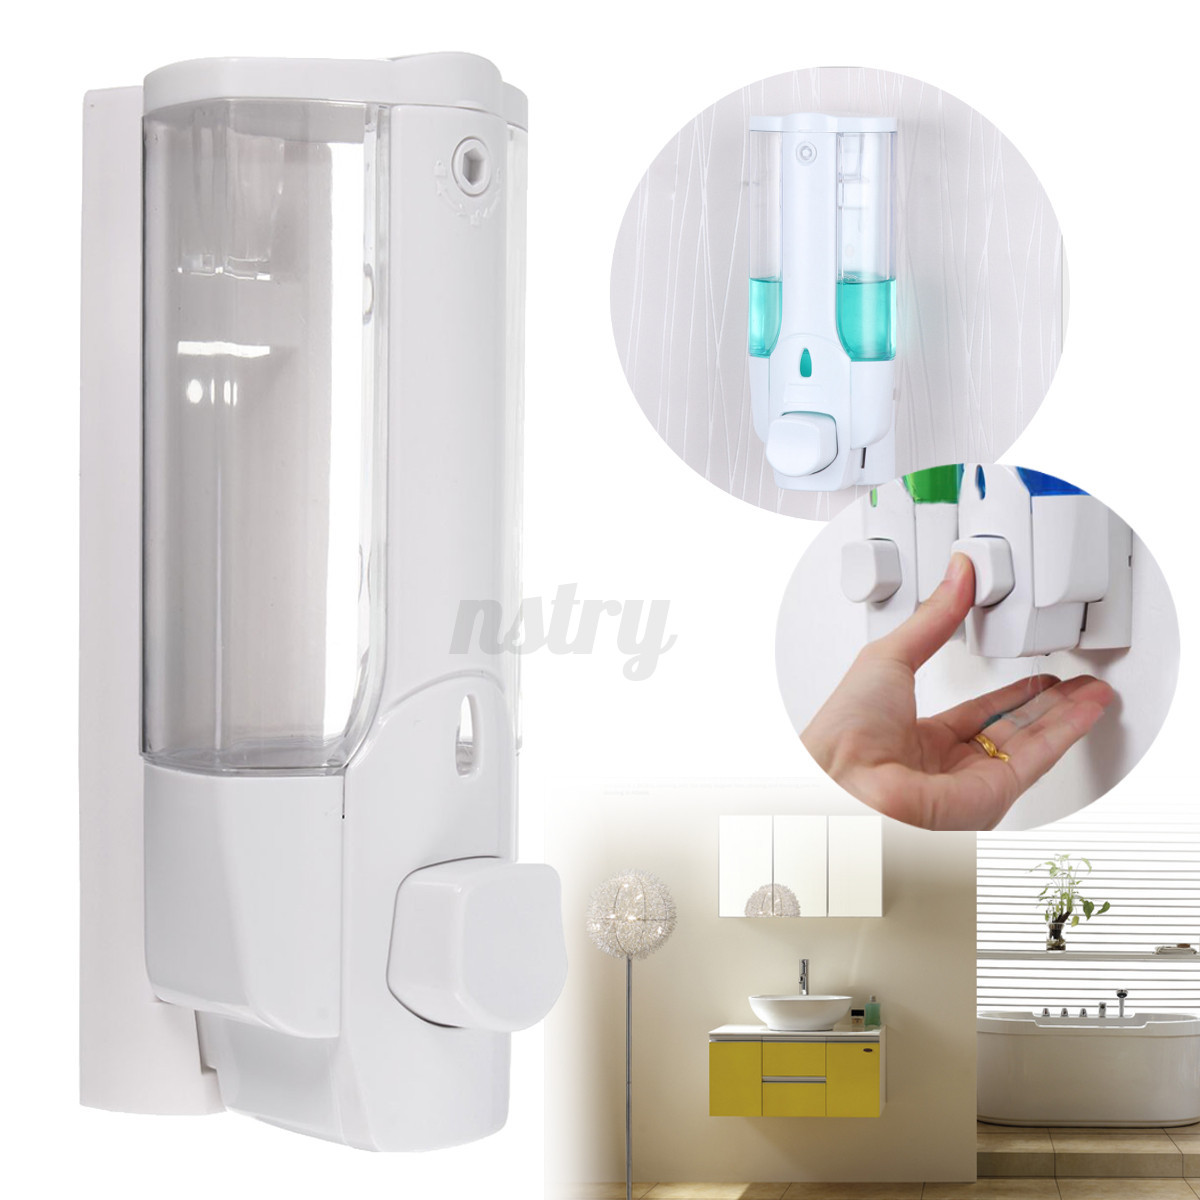 Soap And Shampoo Dispensers For Showers Home Bathroom Sanitizer Soap Dispenser Wall Mount Shower